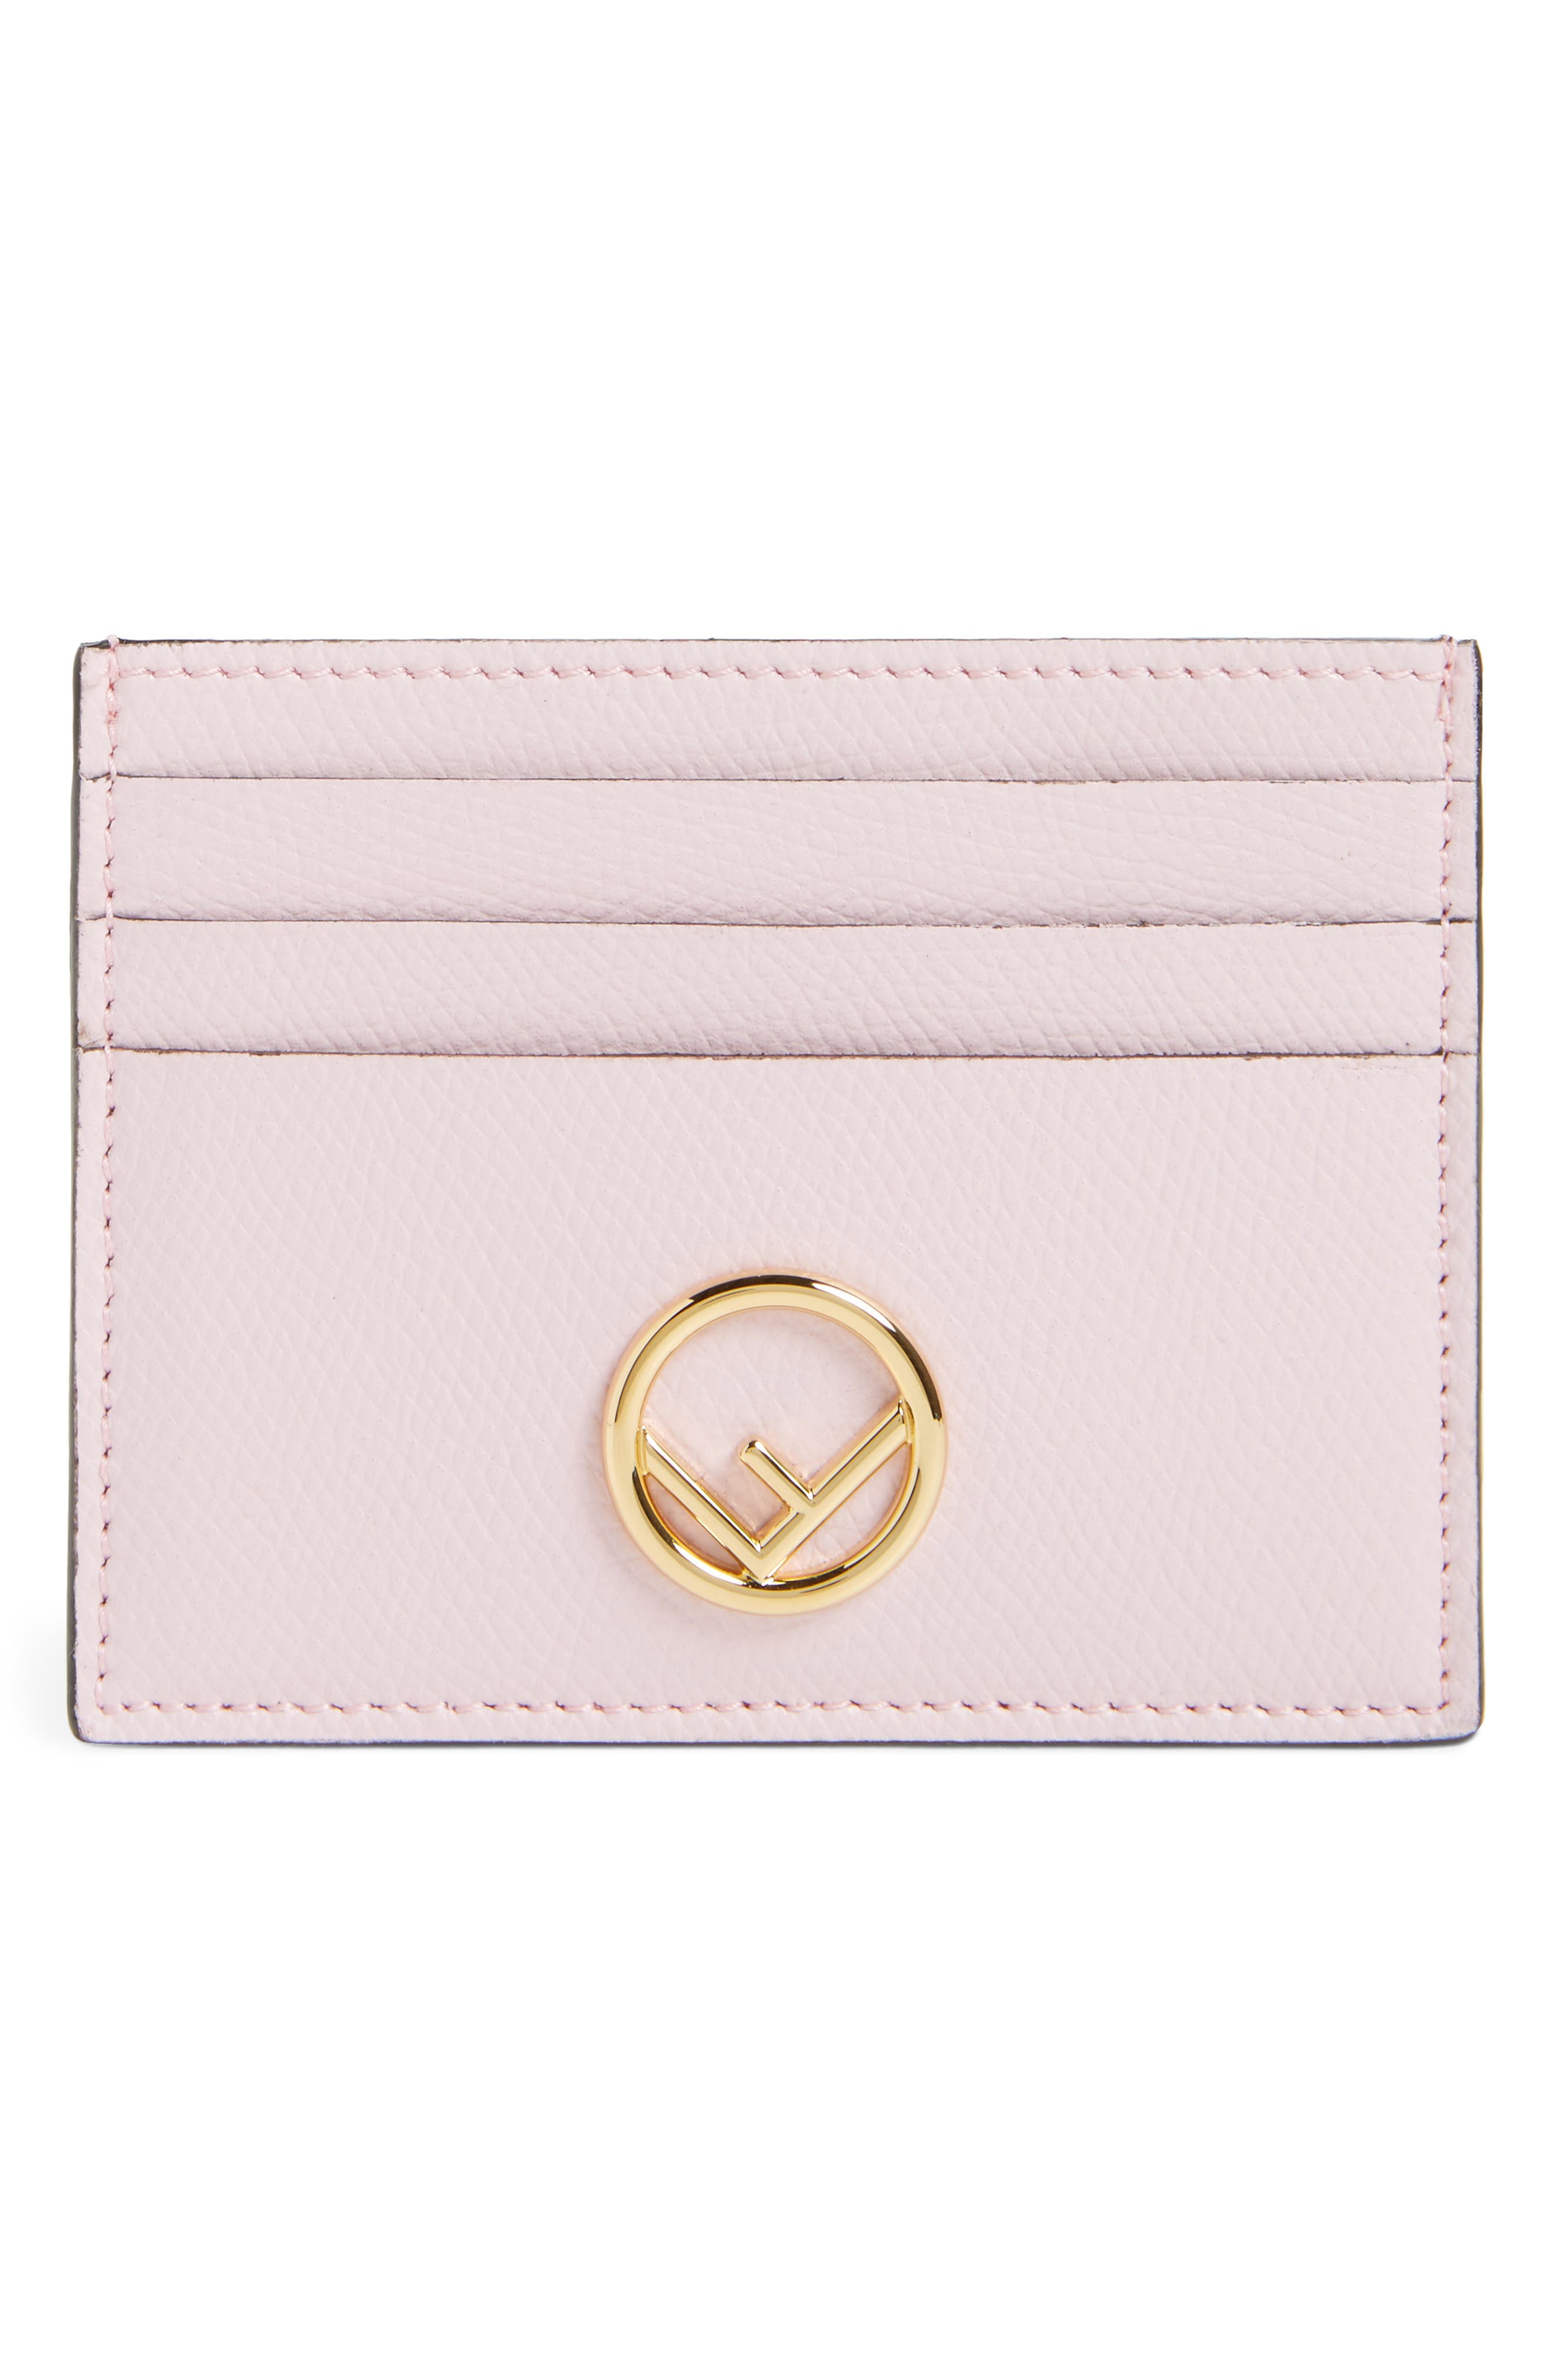 Leather Card Case,                             Main thumbnail 1, color,                             Peony/ Oro Soft